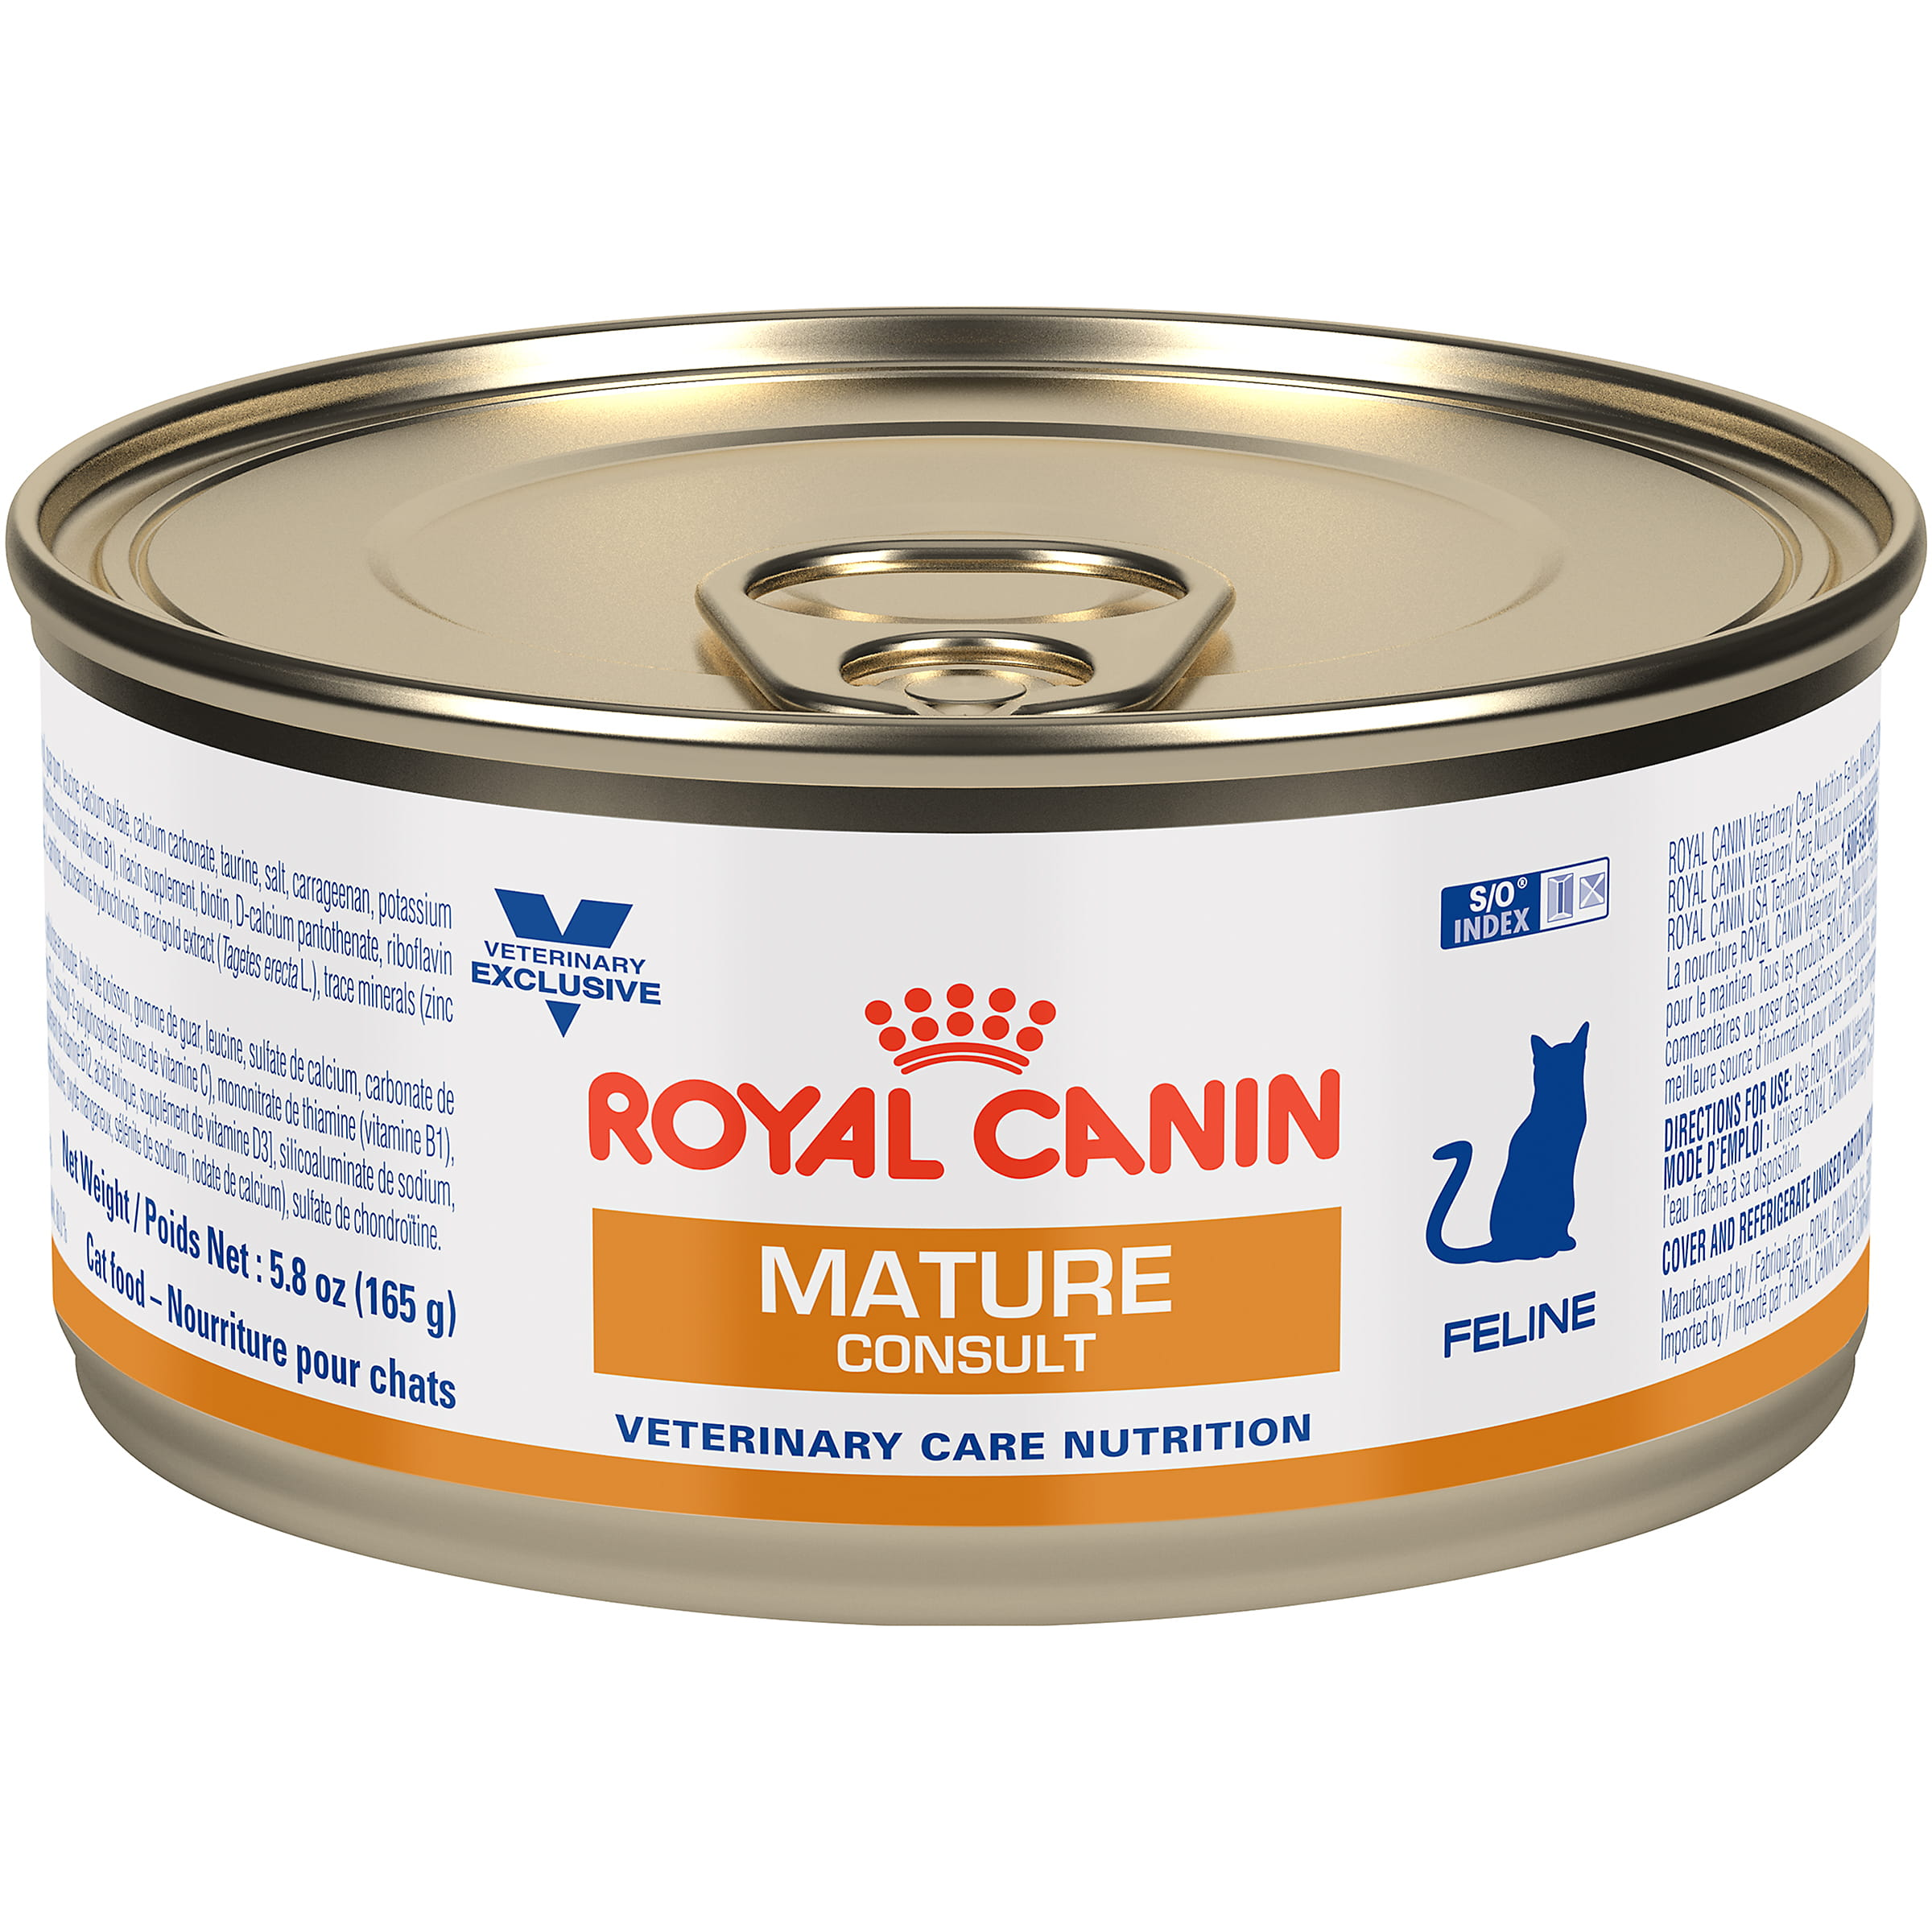 Royal Canin Veterinary Diet Feline Mature Consult Canned Cat Food